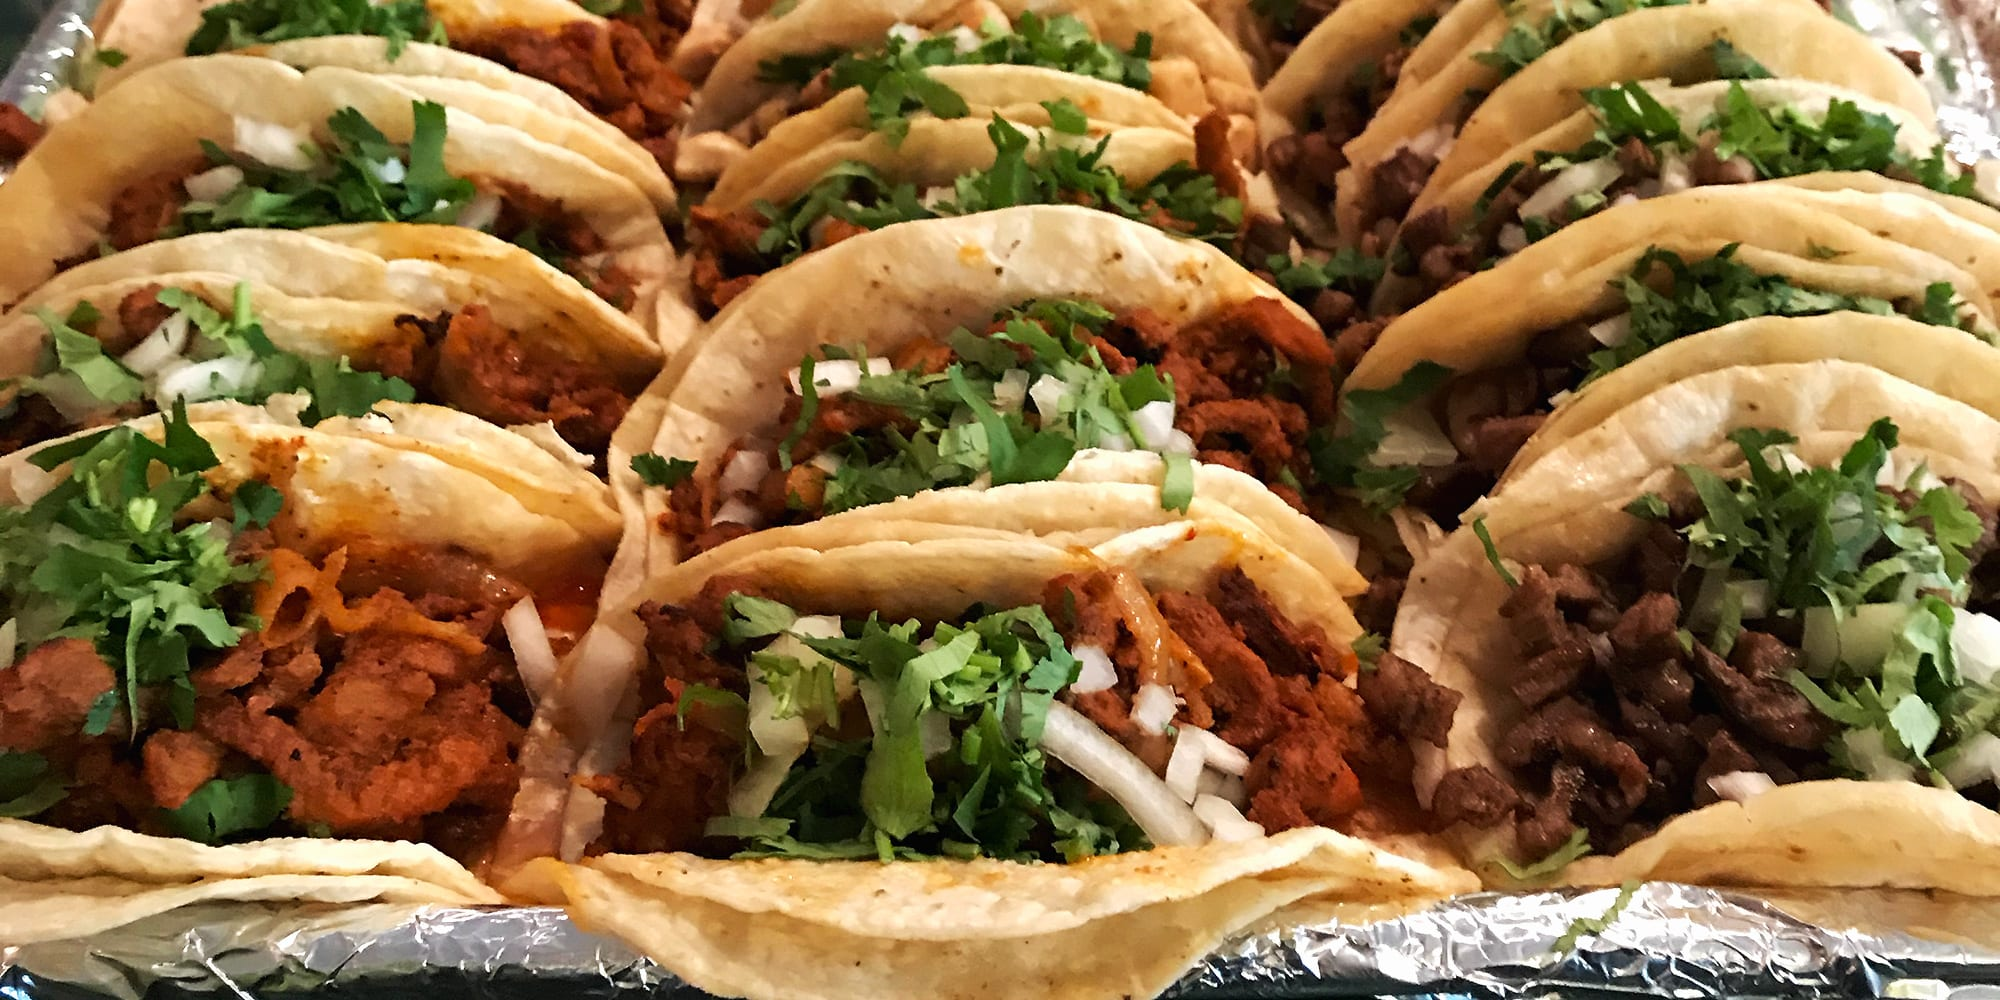 A variety of delicios tacos from Palacios Mexican Restaurant in Dutchtown, St. Louis.